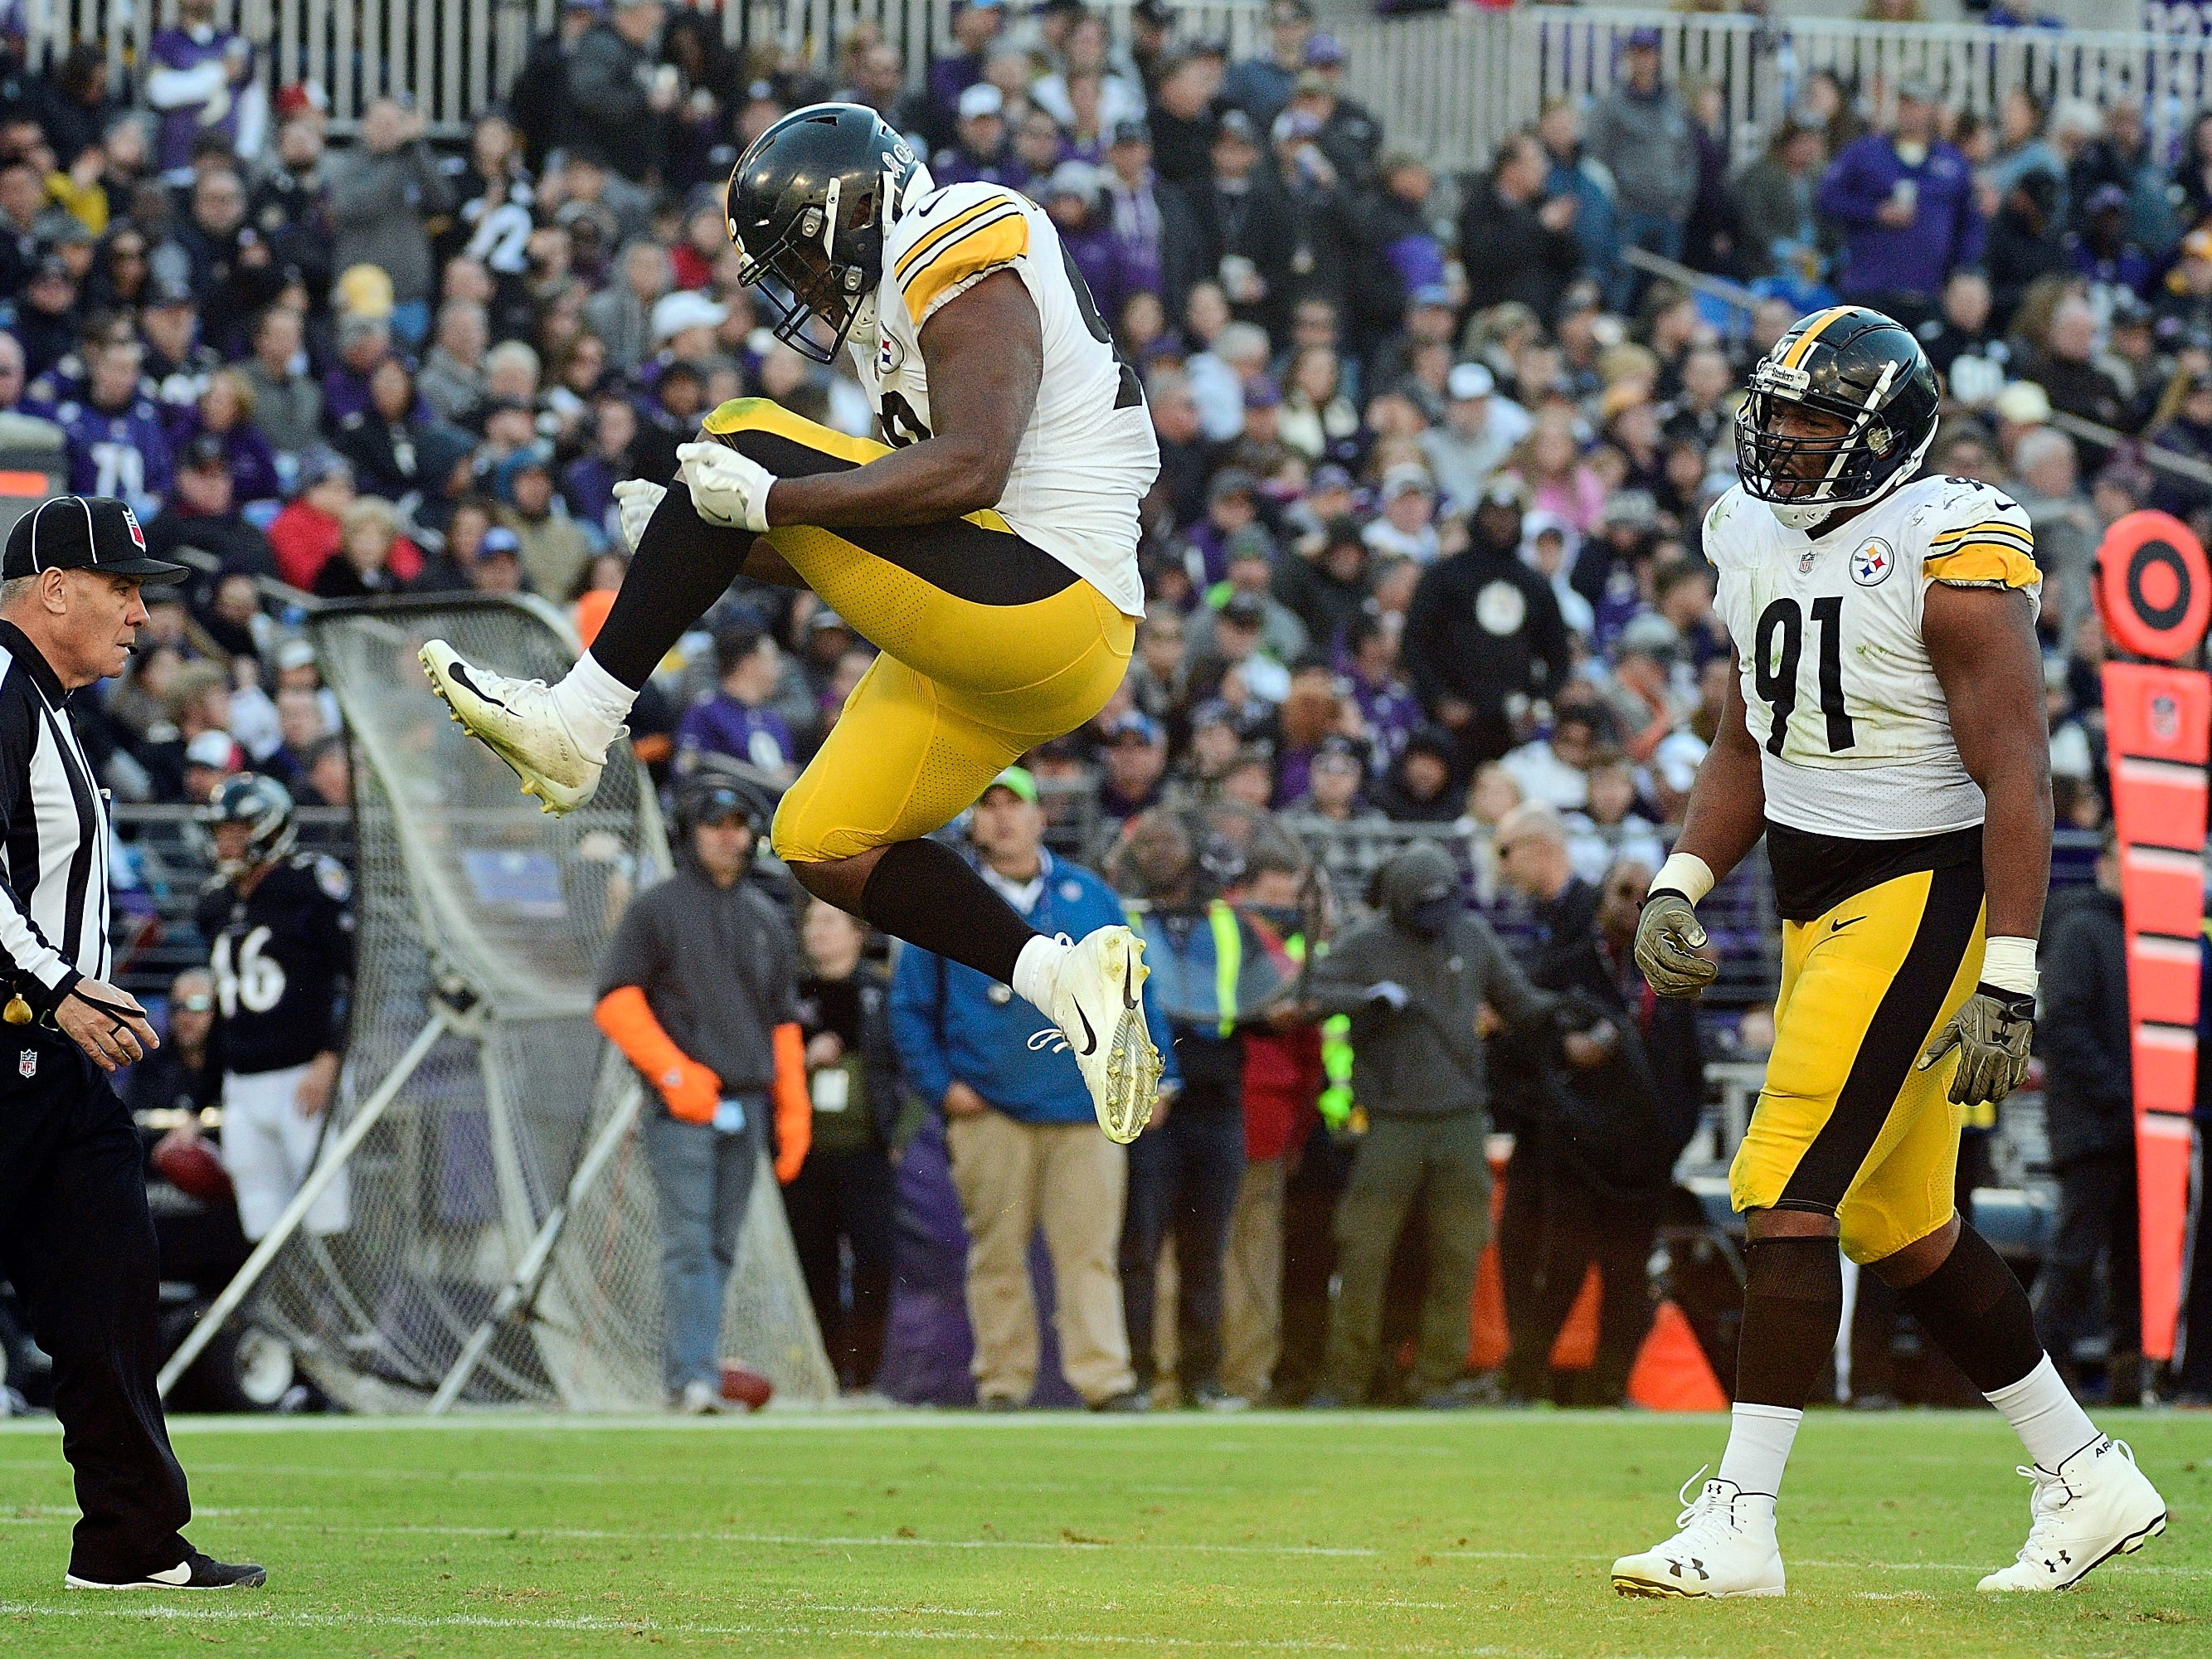 8. Steelers (5-2-1) | Last game: Defeated the Ravens, 23-16 | Previous ranking: 8